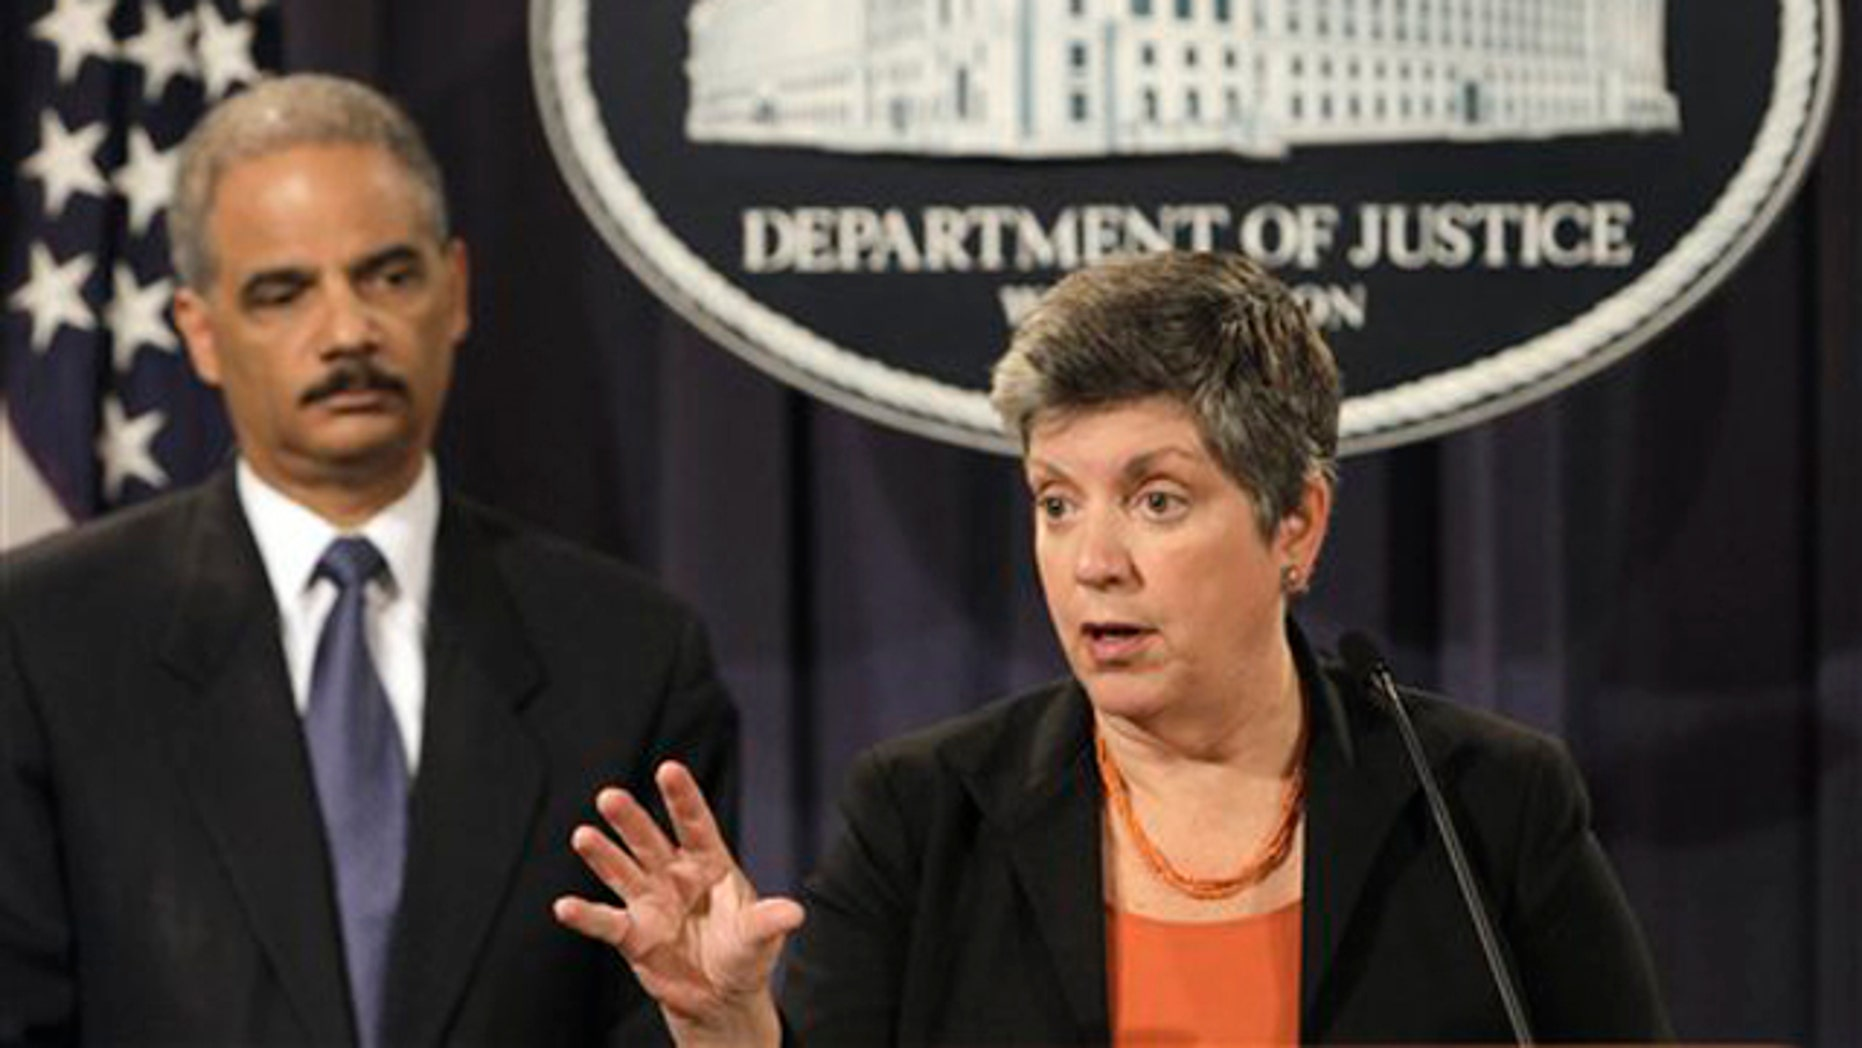 Attorney General Eric Holder, left, listens as Homeland Security Secretary Janet Napolitano speaks at the Justice Department in Washington Aug. 3.